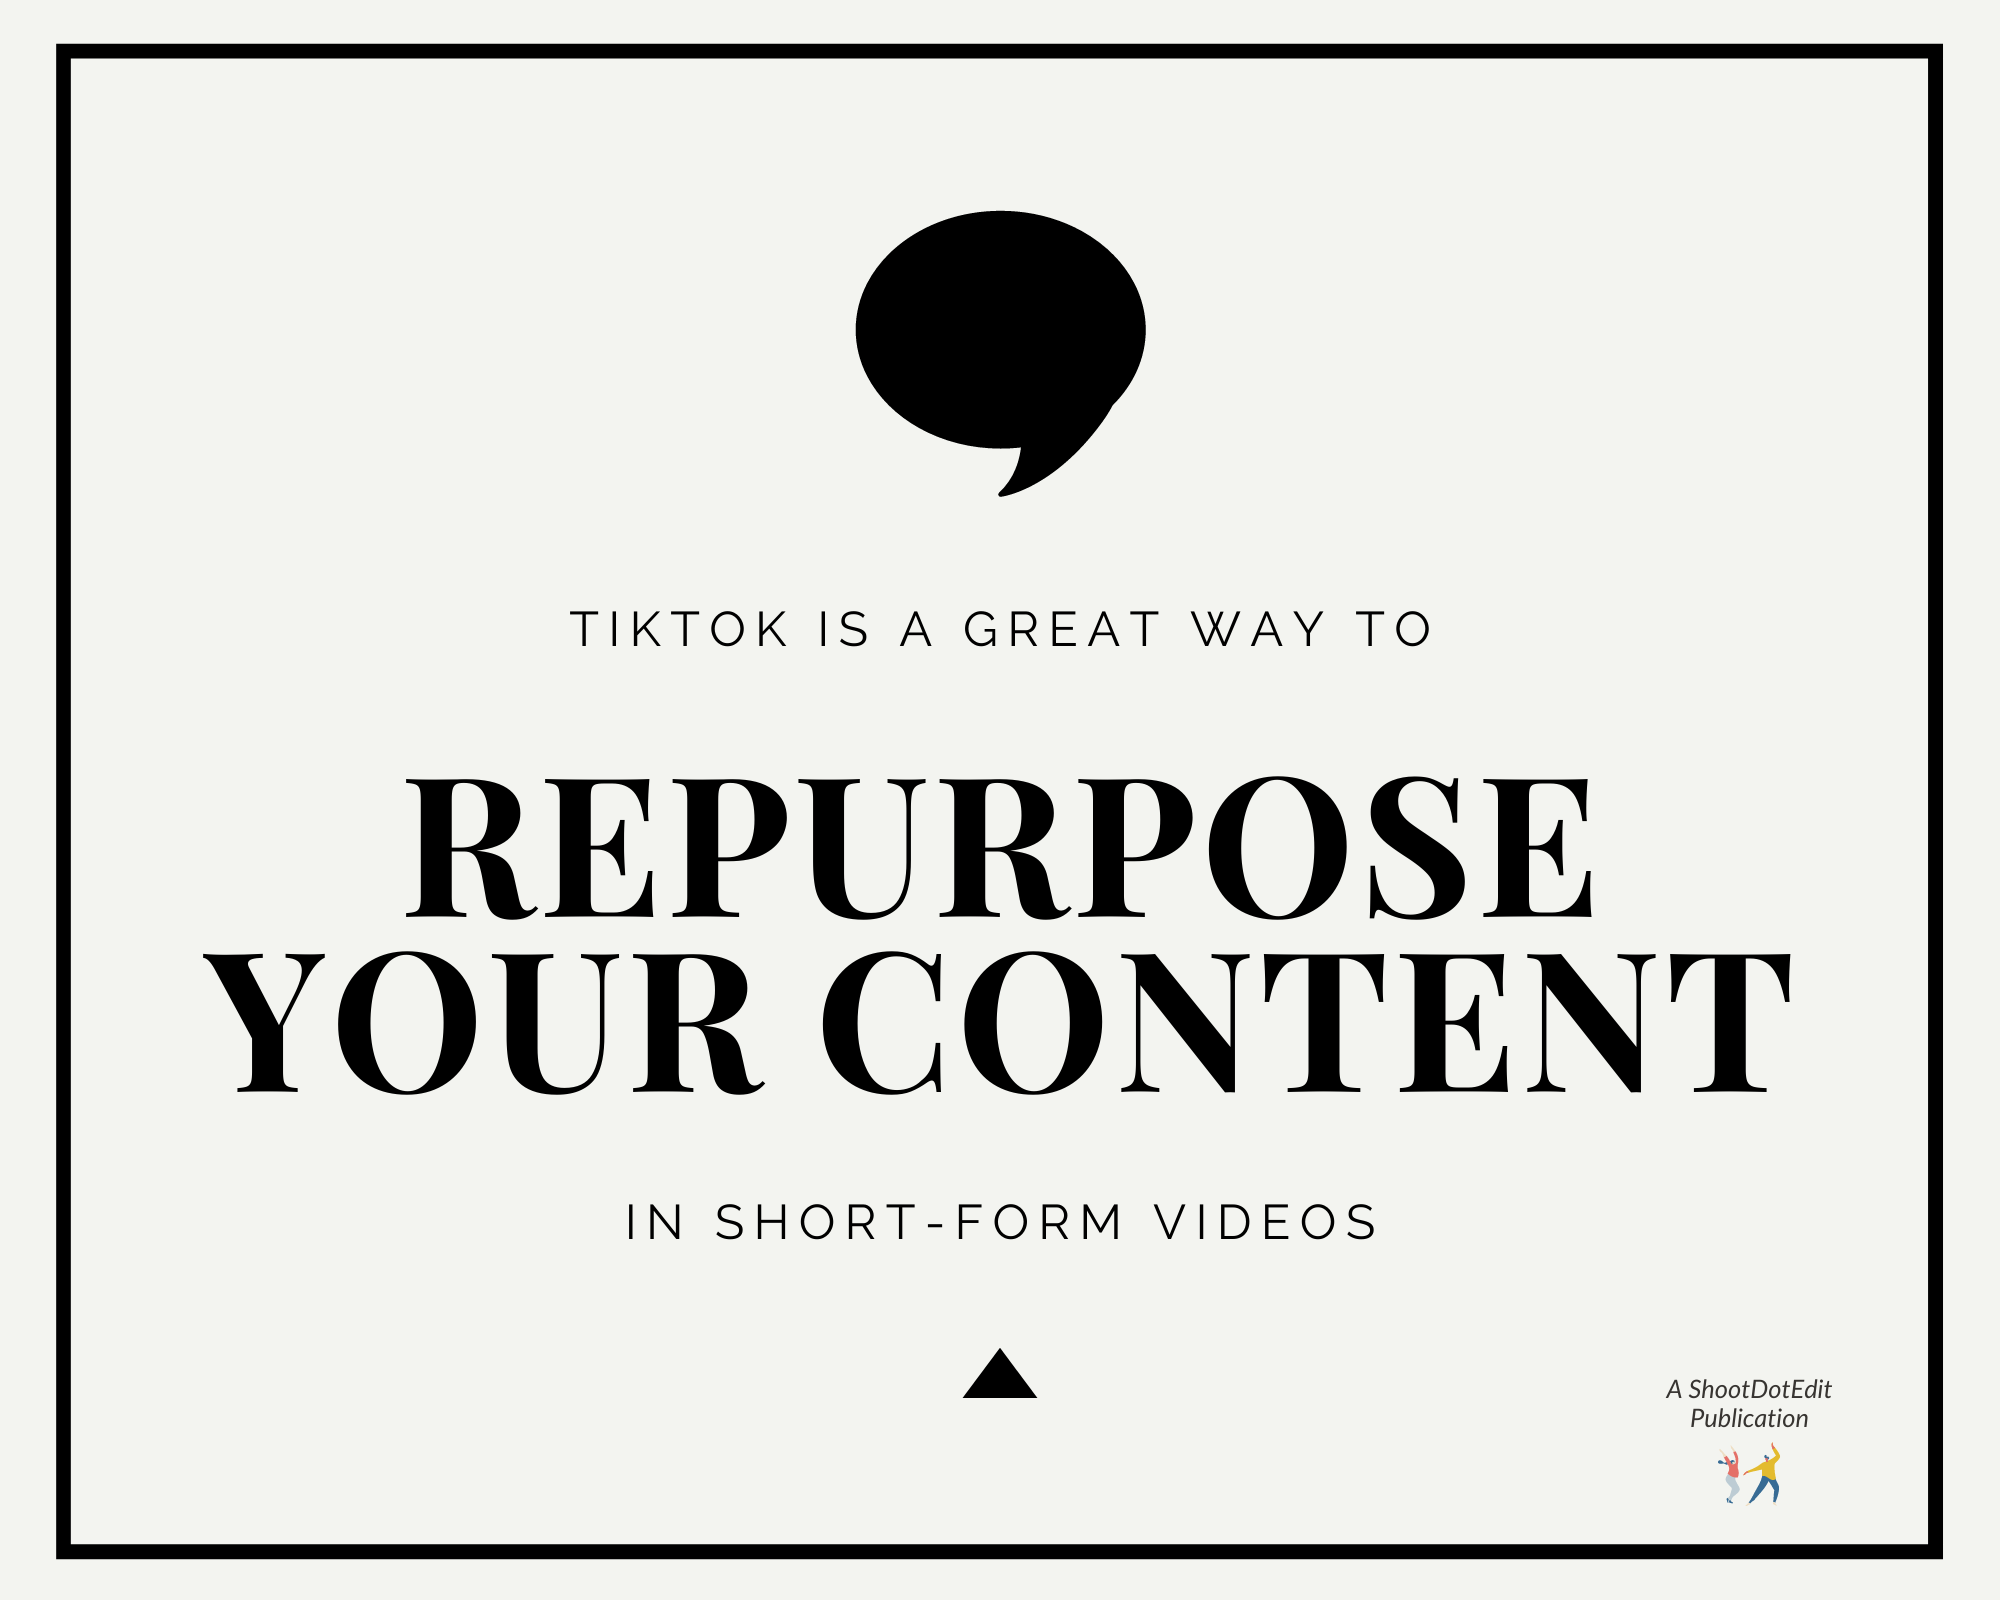 Infographic stating TikTok is a great way to repurpose your content in short form videos